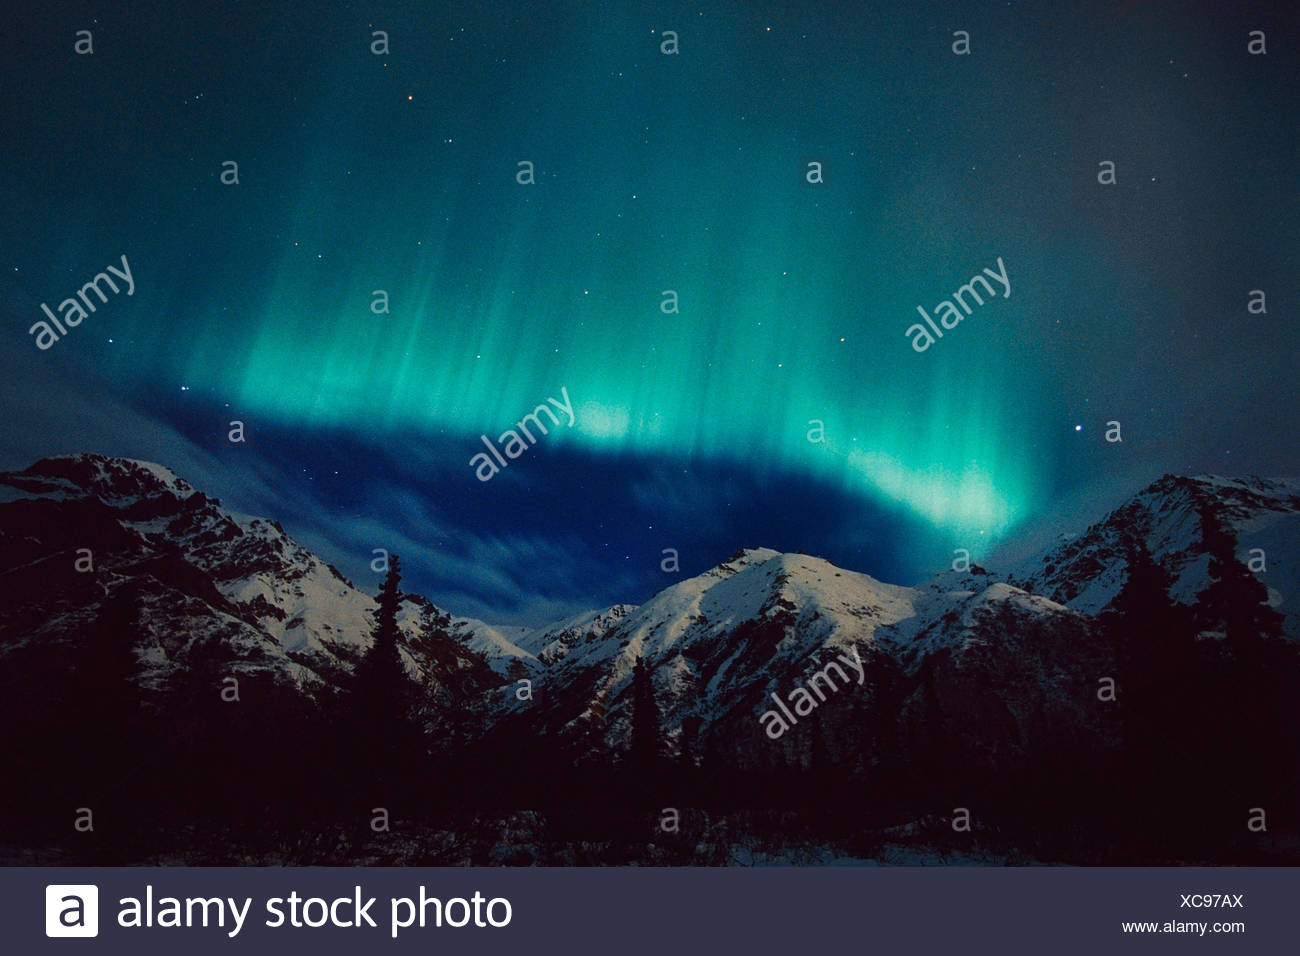 Green Aurora Over Sheep Mt Talkeetna Mtns Alaska Winter - Stock Image